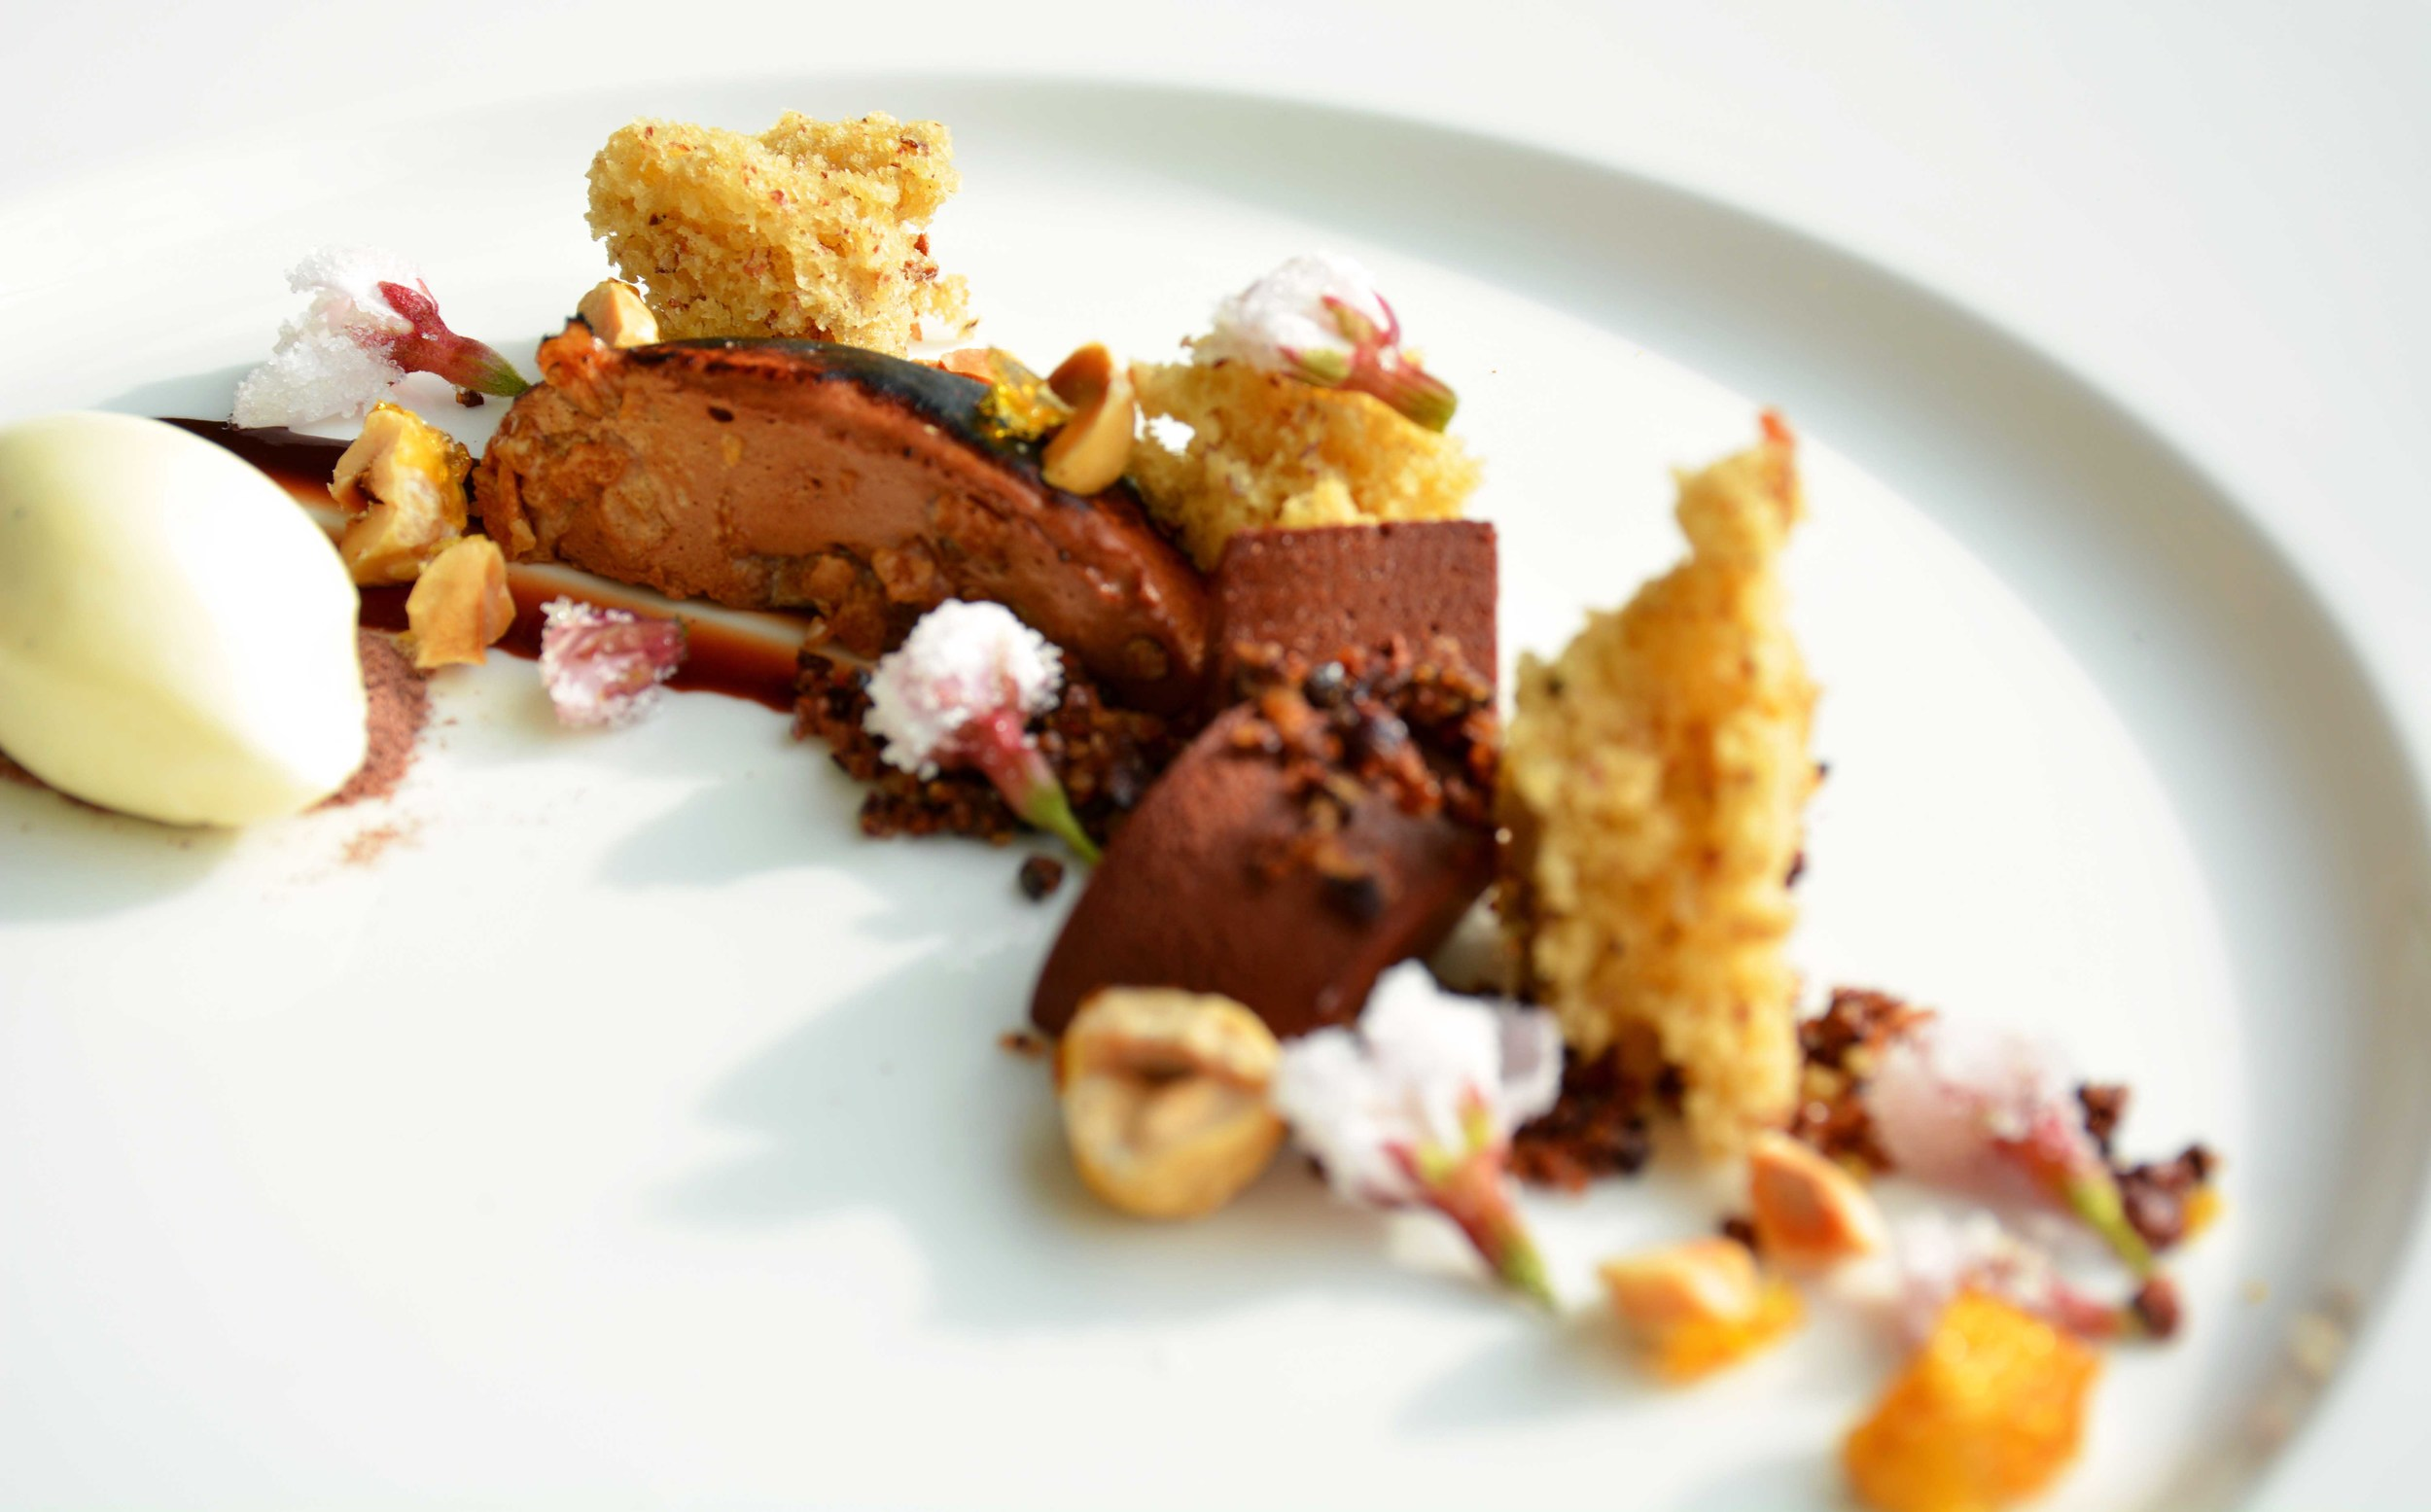 Love the combination of chocolate and hazelnuts.